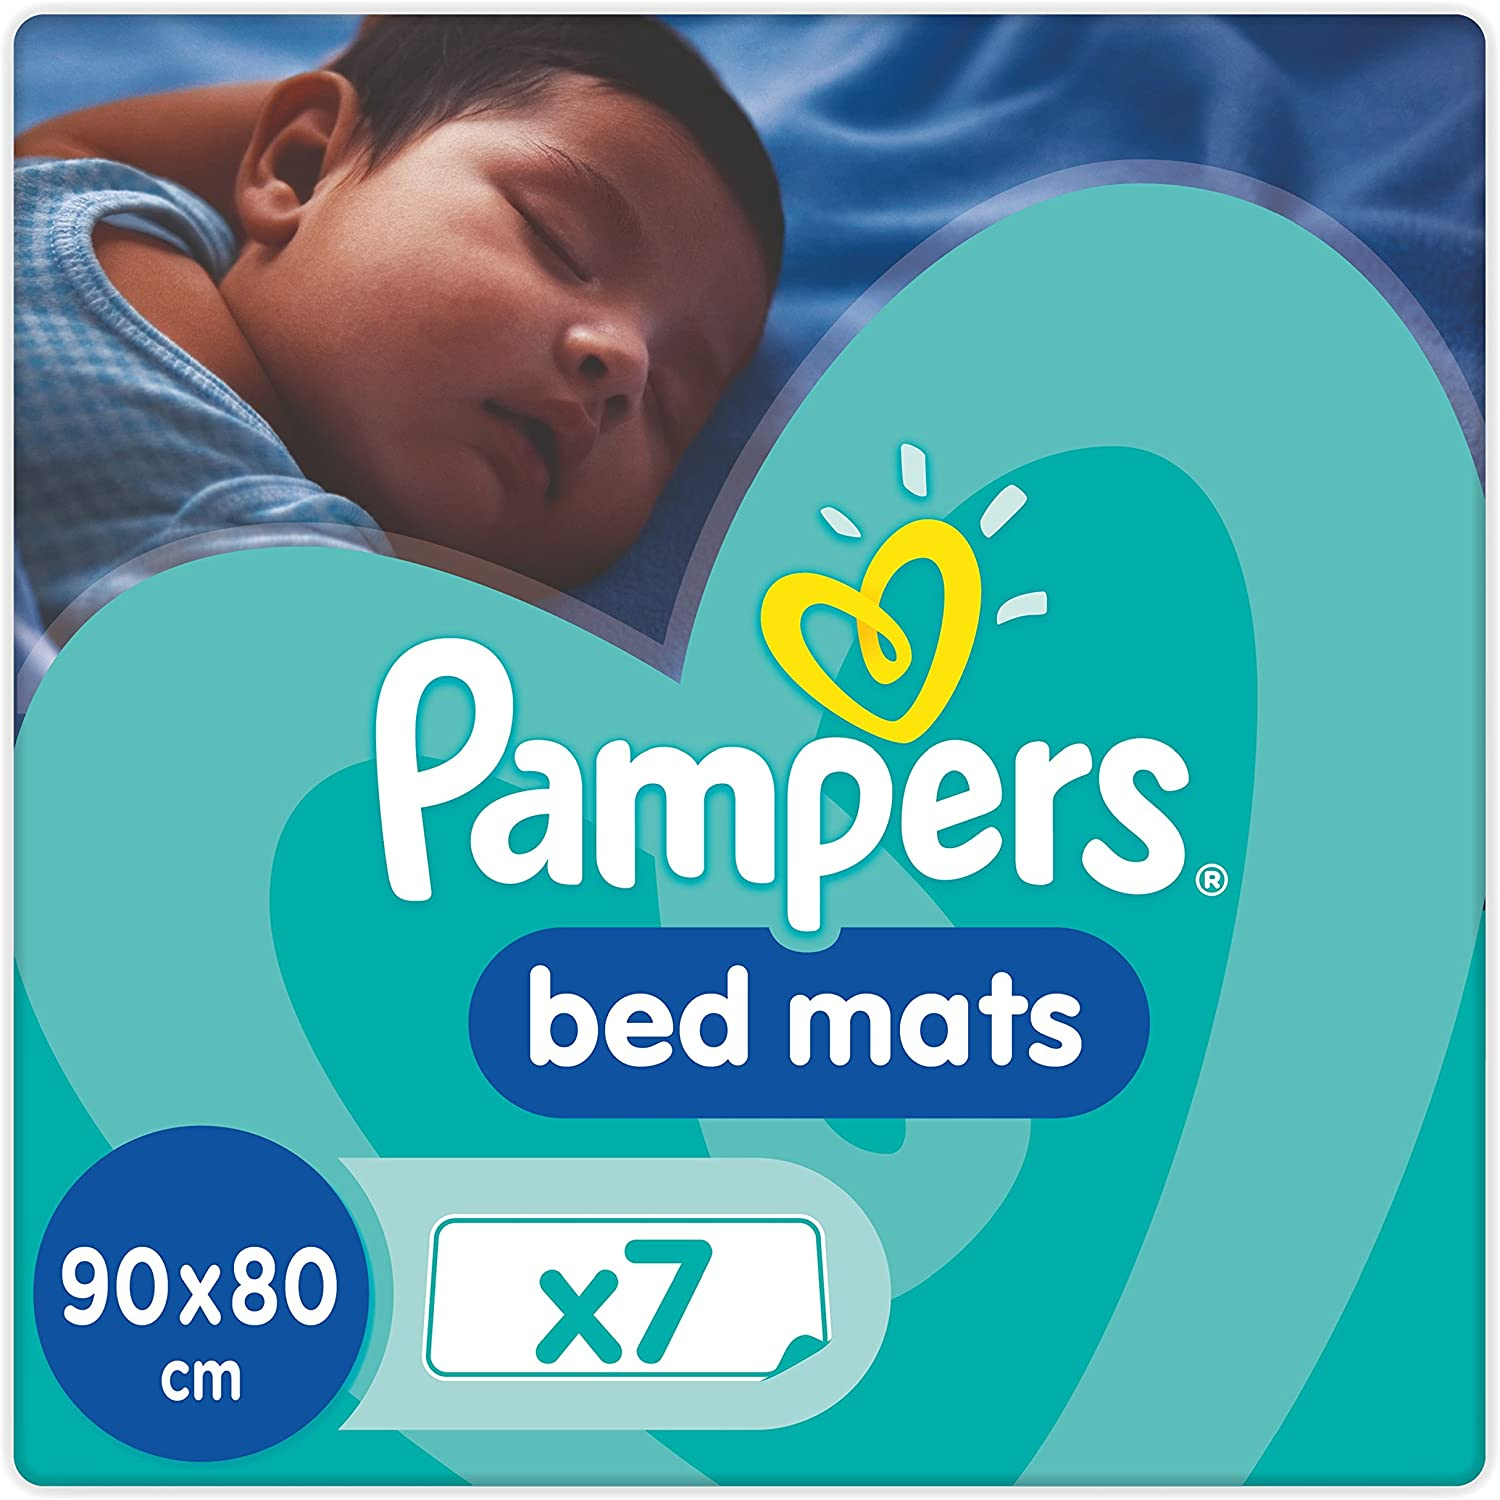 Pampers Super Absorbent Baby Children Disposable Change Changing Mats MultiPack